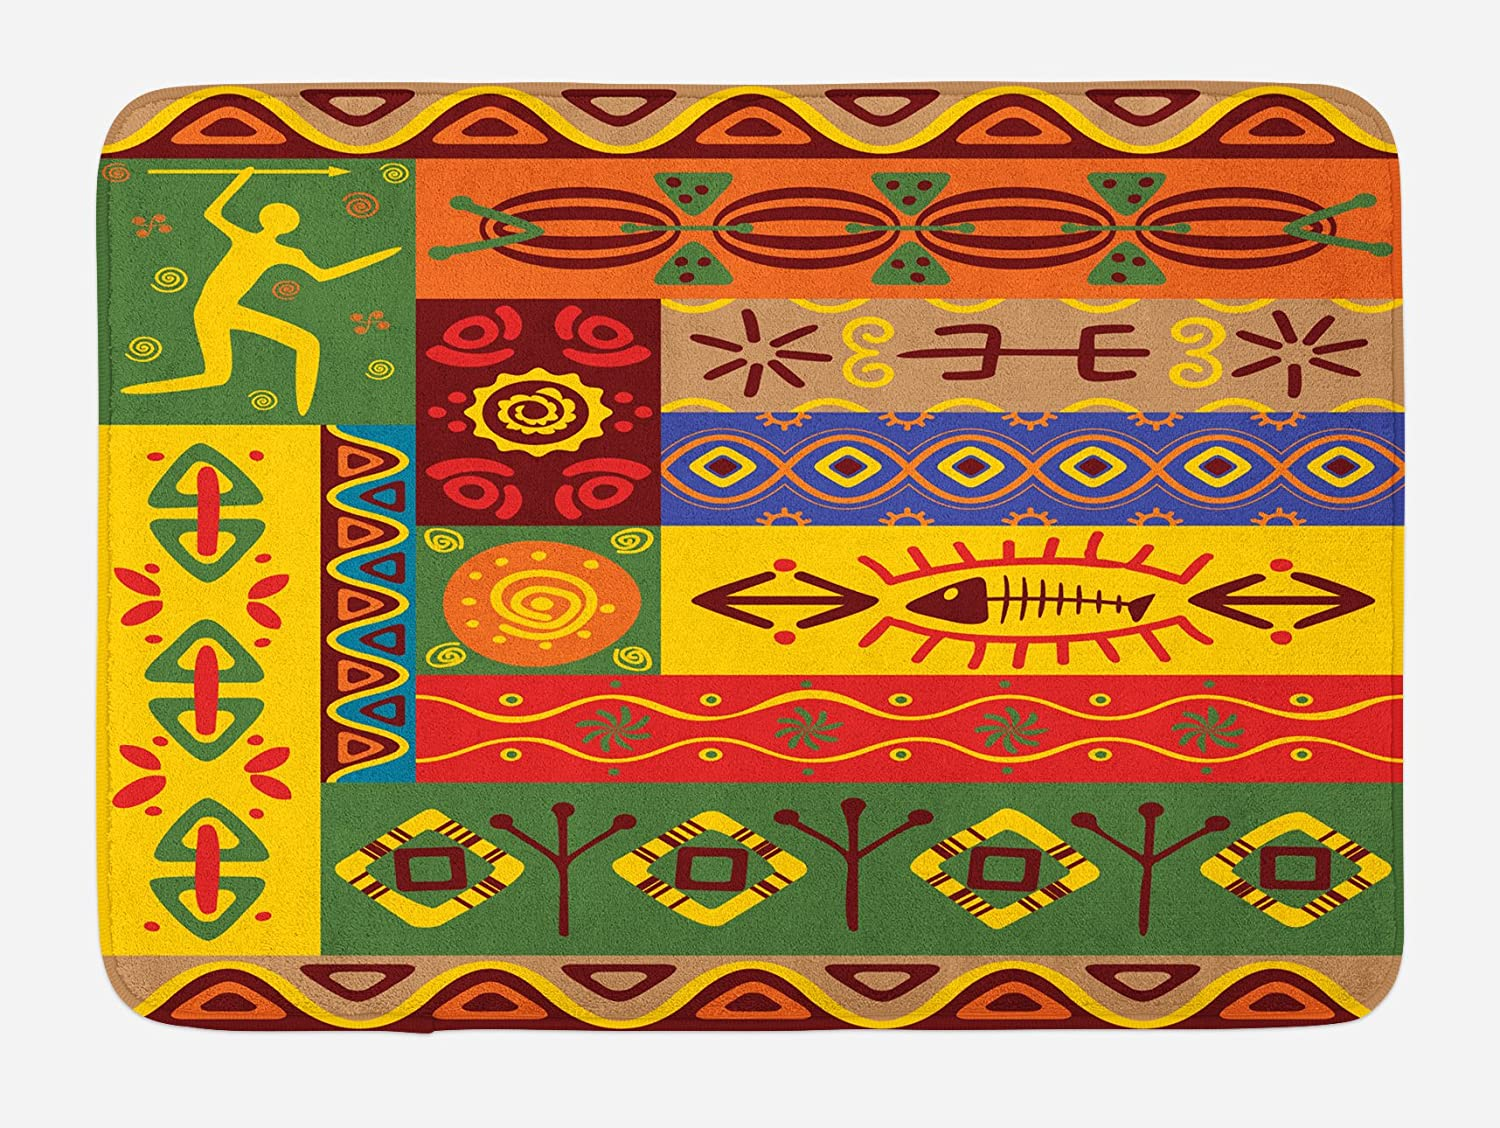 Ambesonne African Bath Mat, Abstract West Folk Art Forms with Unique Lines Print, Plush Bathroom Decor Mat with Non Slip Backing, 29.5 X 17.5, Multicolor